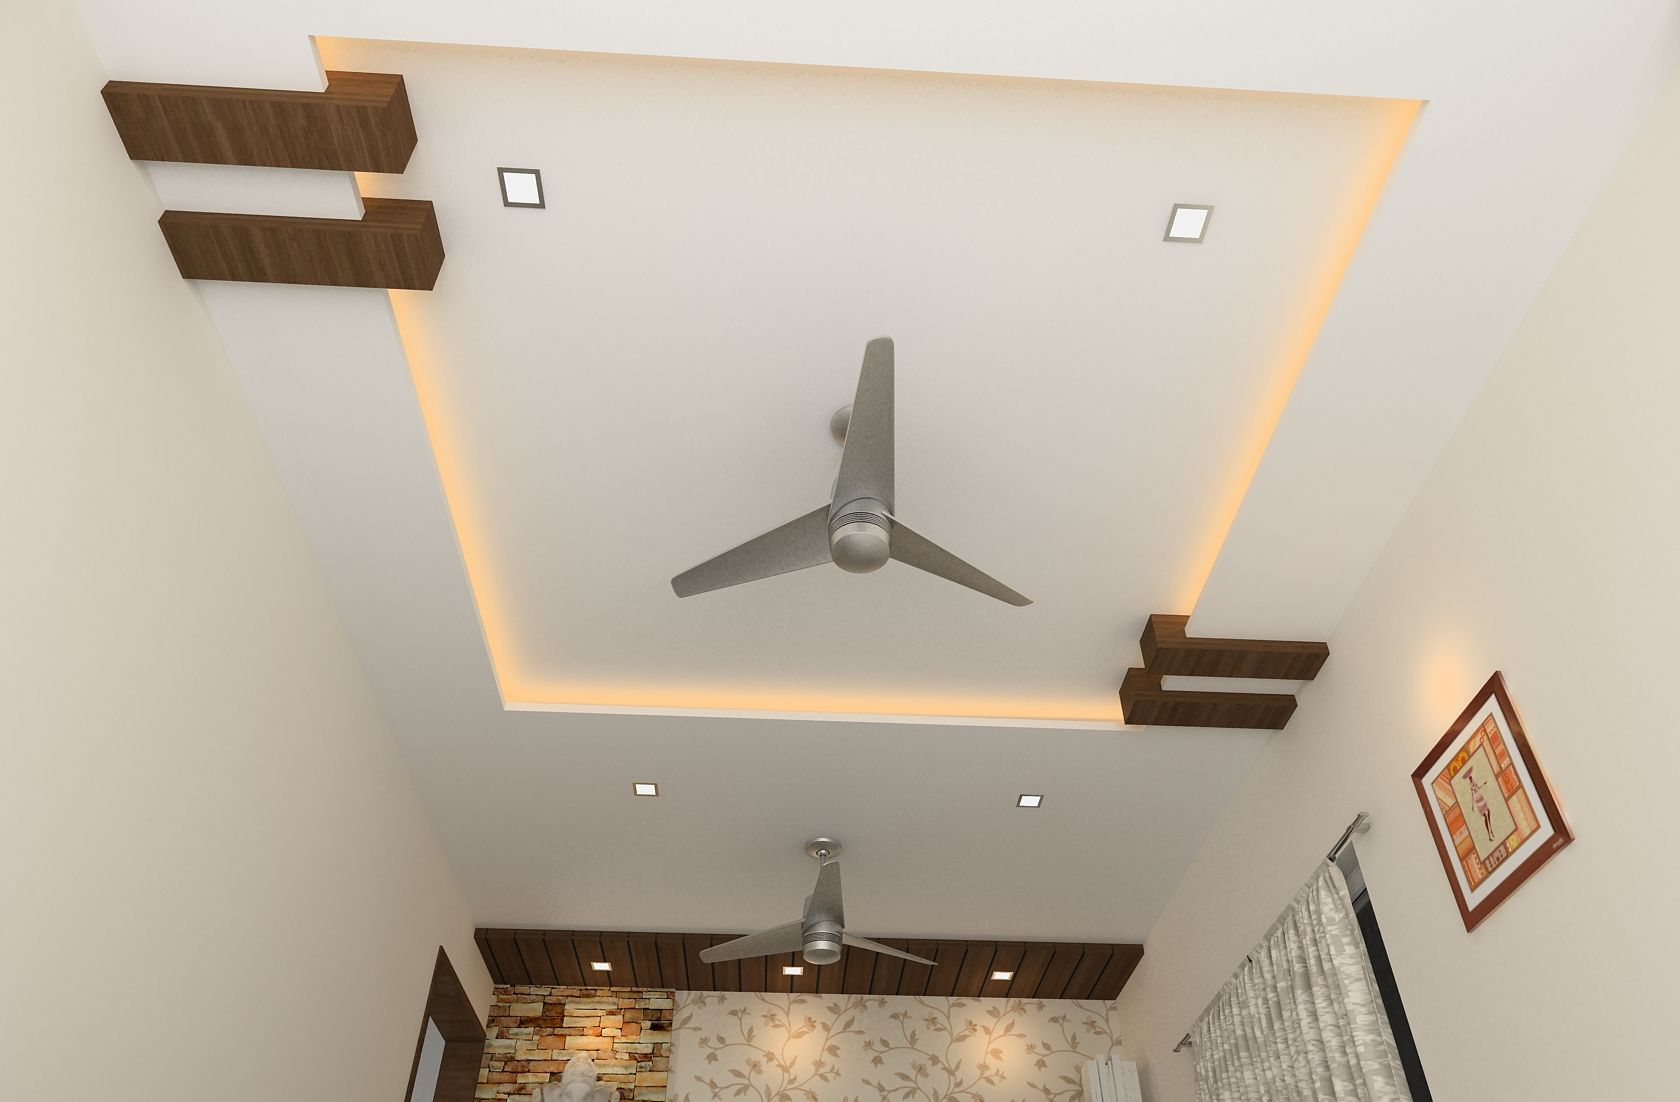 Pin By Saqib On Ceiling Design Bedroom With Images Ceiling